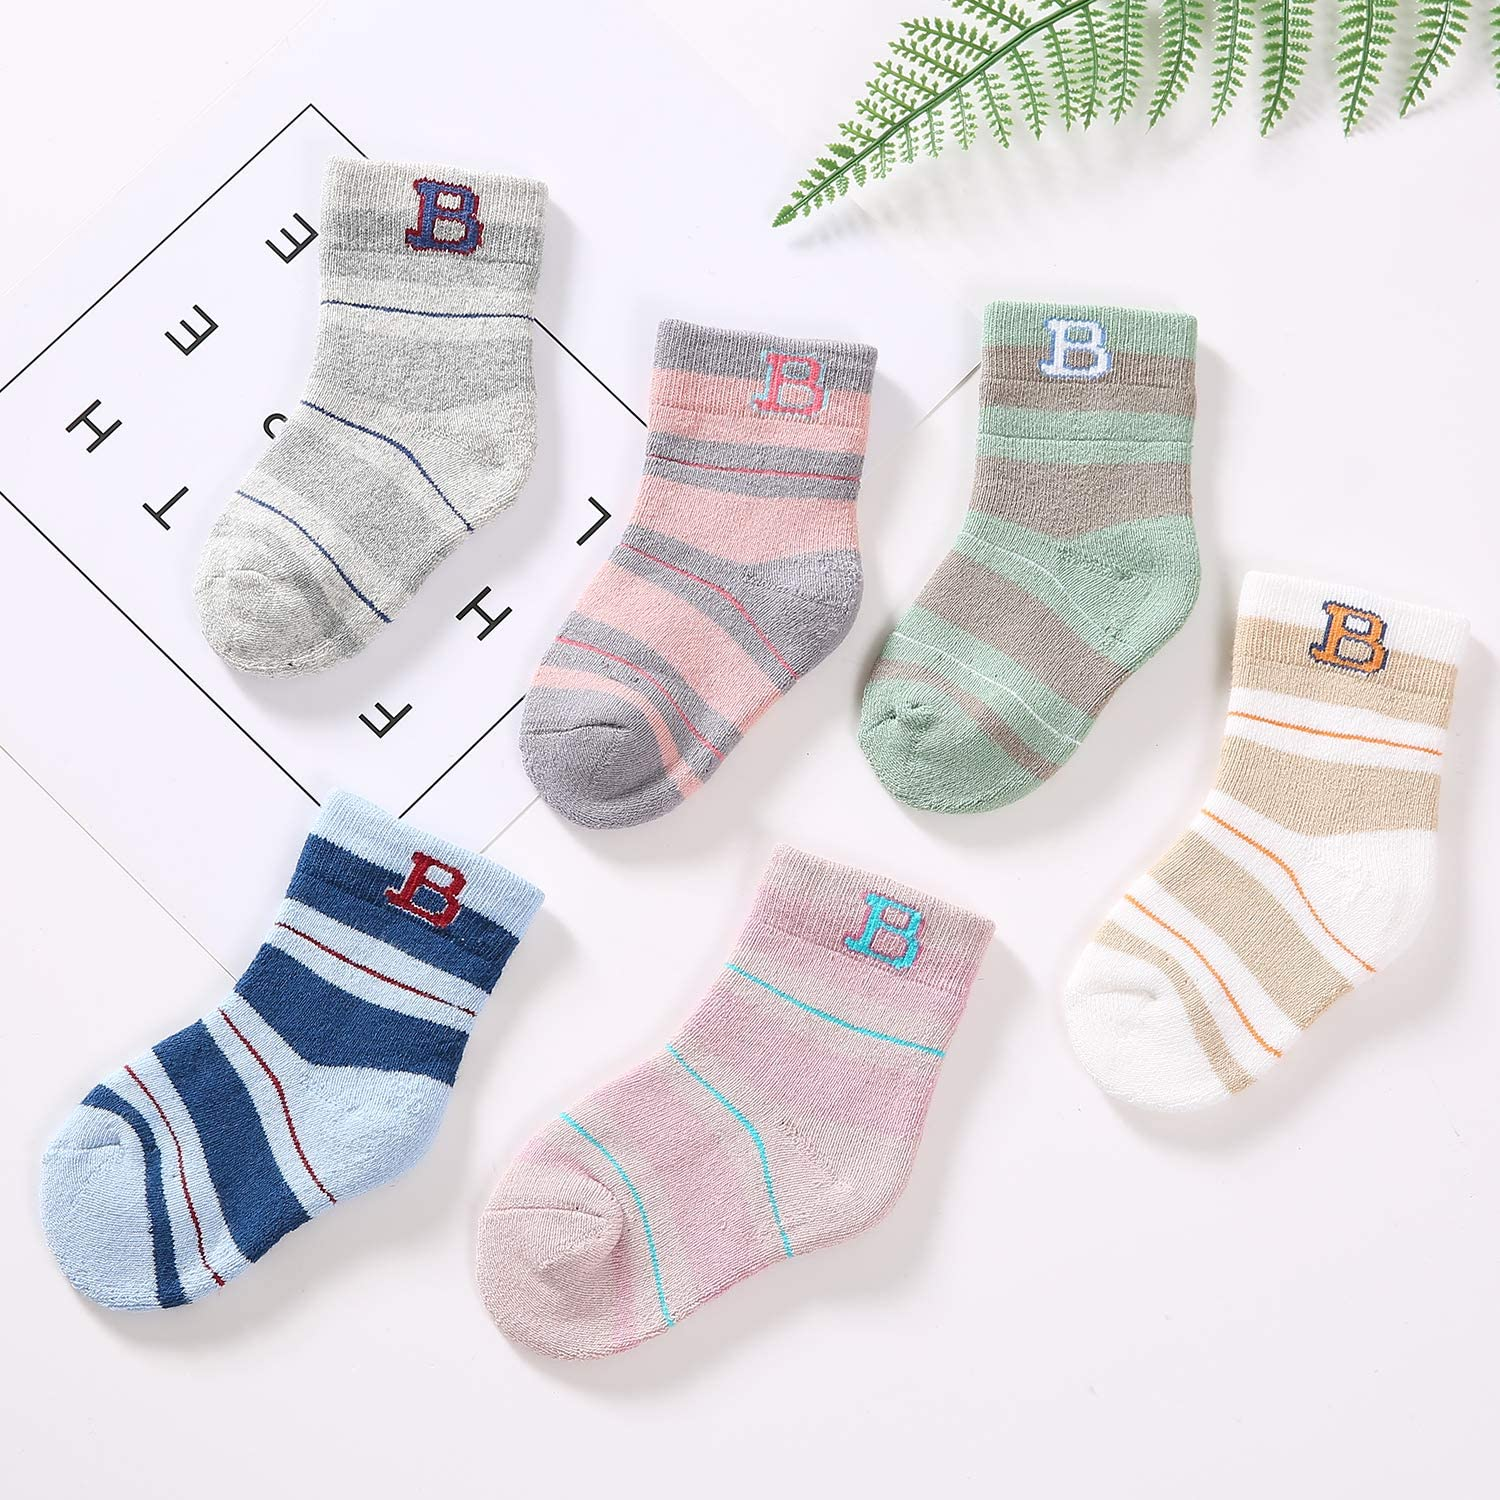 CHINE HIGH Varity Of Baby Socks 5//12 Pairs Colorful Cartoon Comfortable Cotton Kids Socks